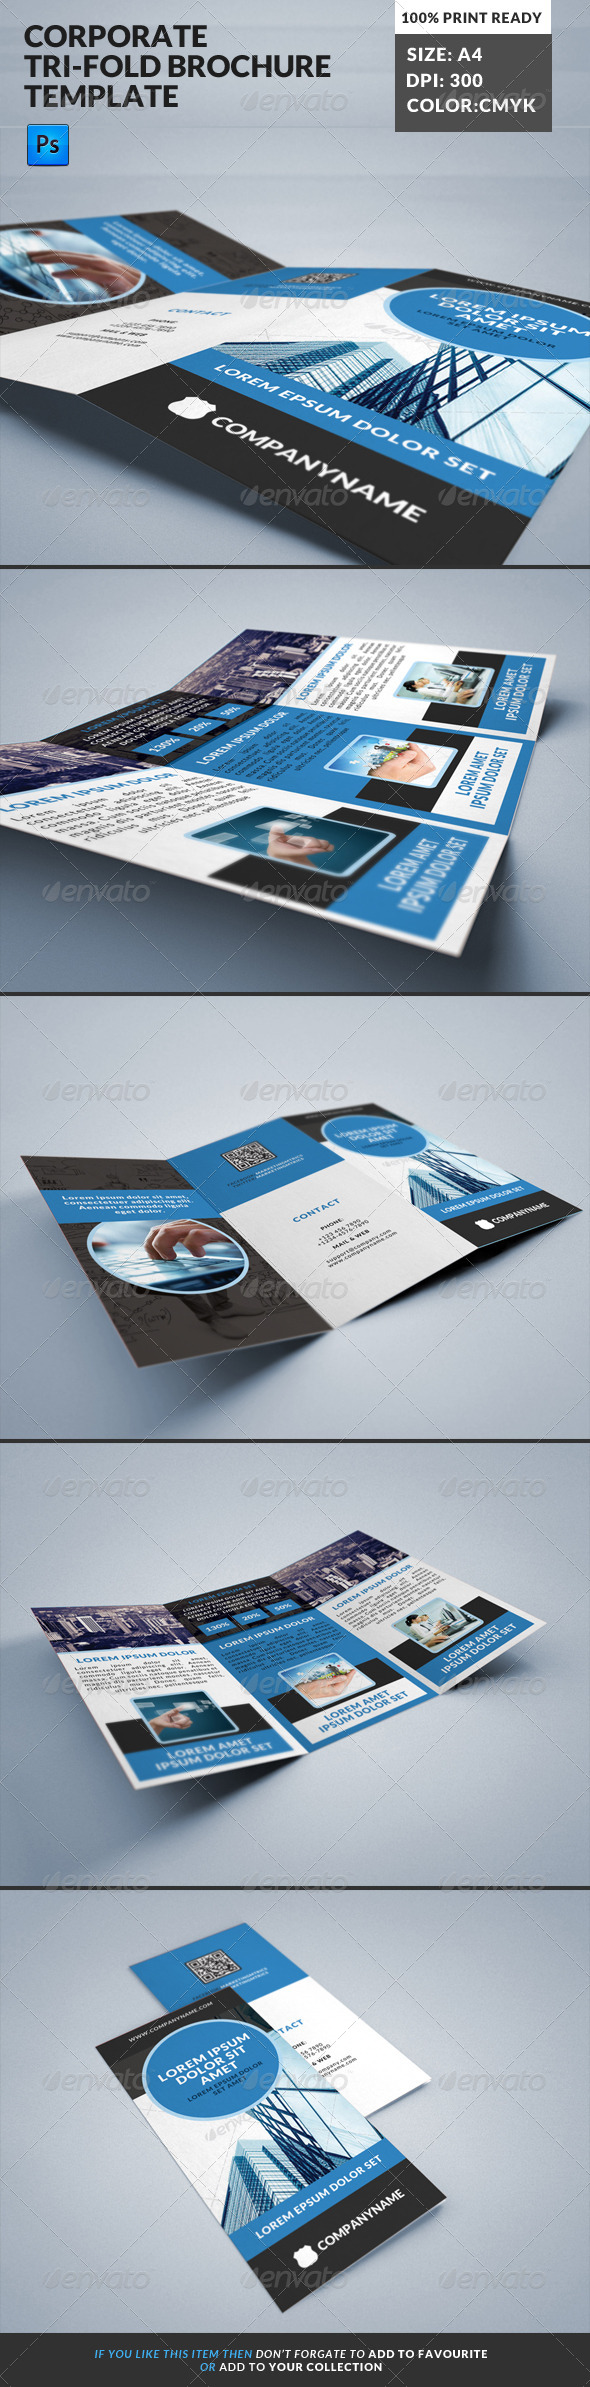 GraphicRiver Corporate Tri-Fold Brochures Template 11 8141529